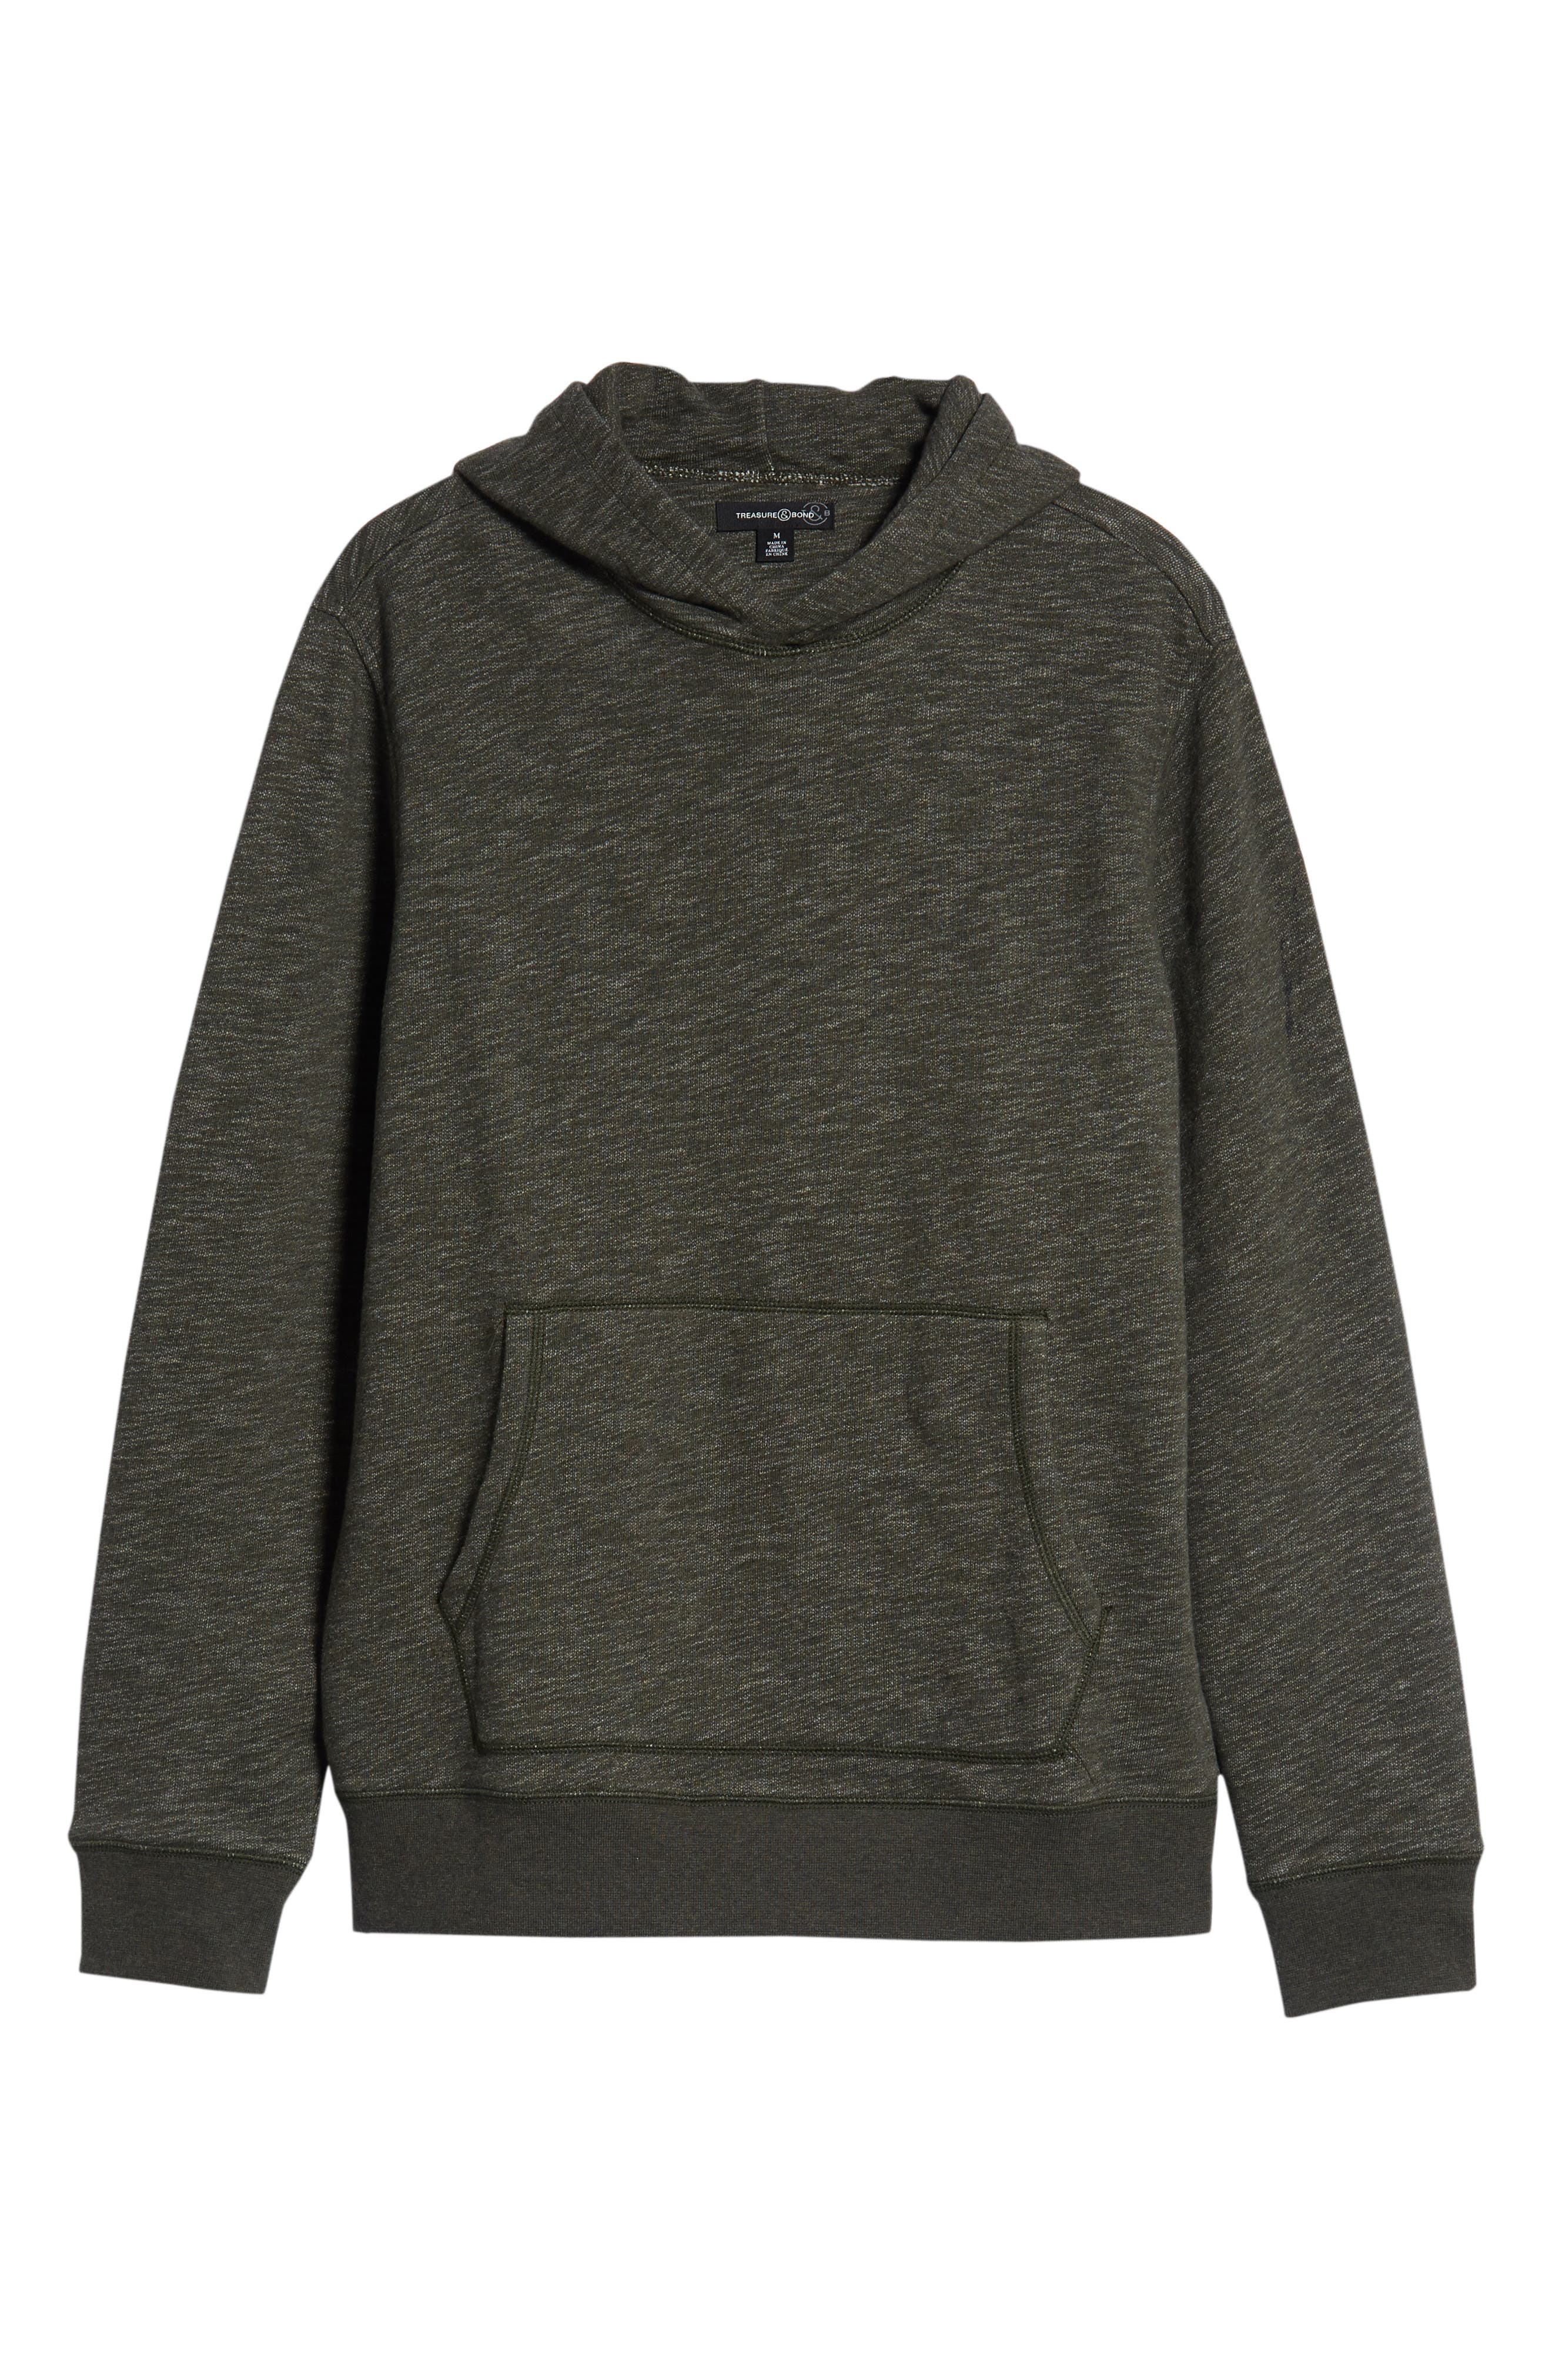 Regular Fit French Terry Pullover Hoodie,                             Alternate thumbnail 6, color,                             OLIVE DARK HEATHER